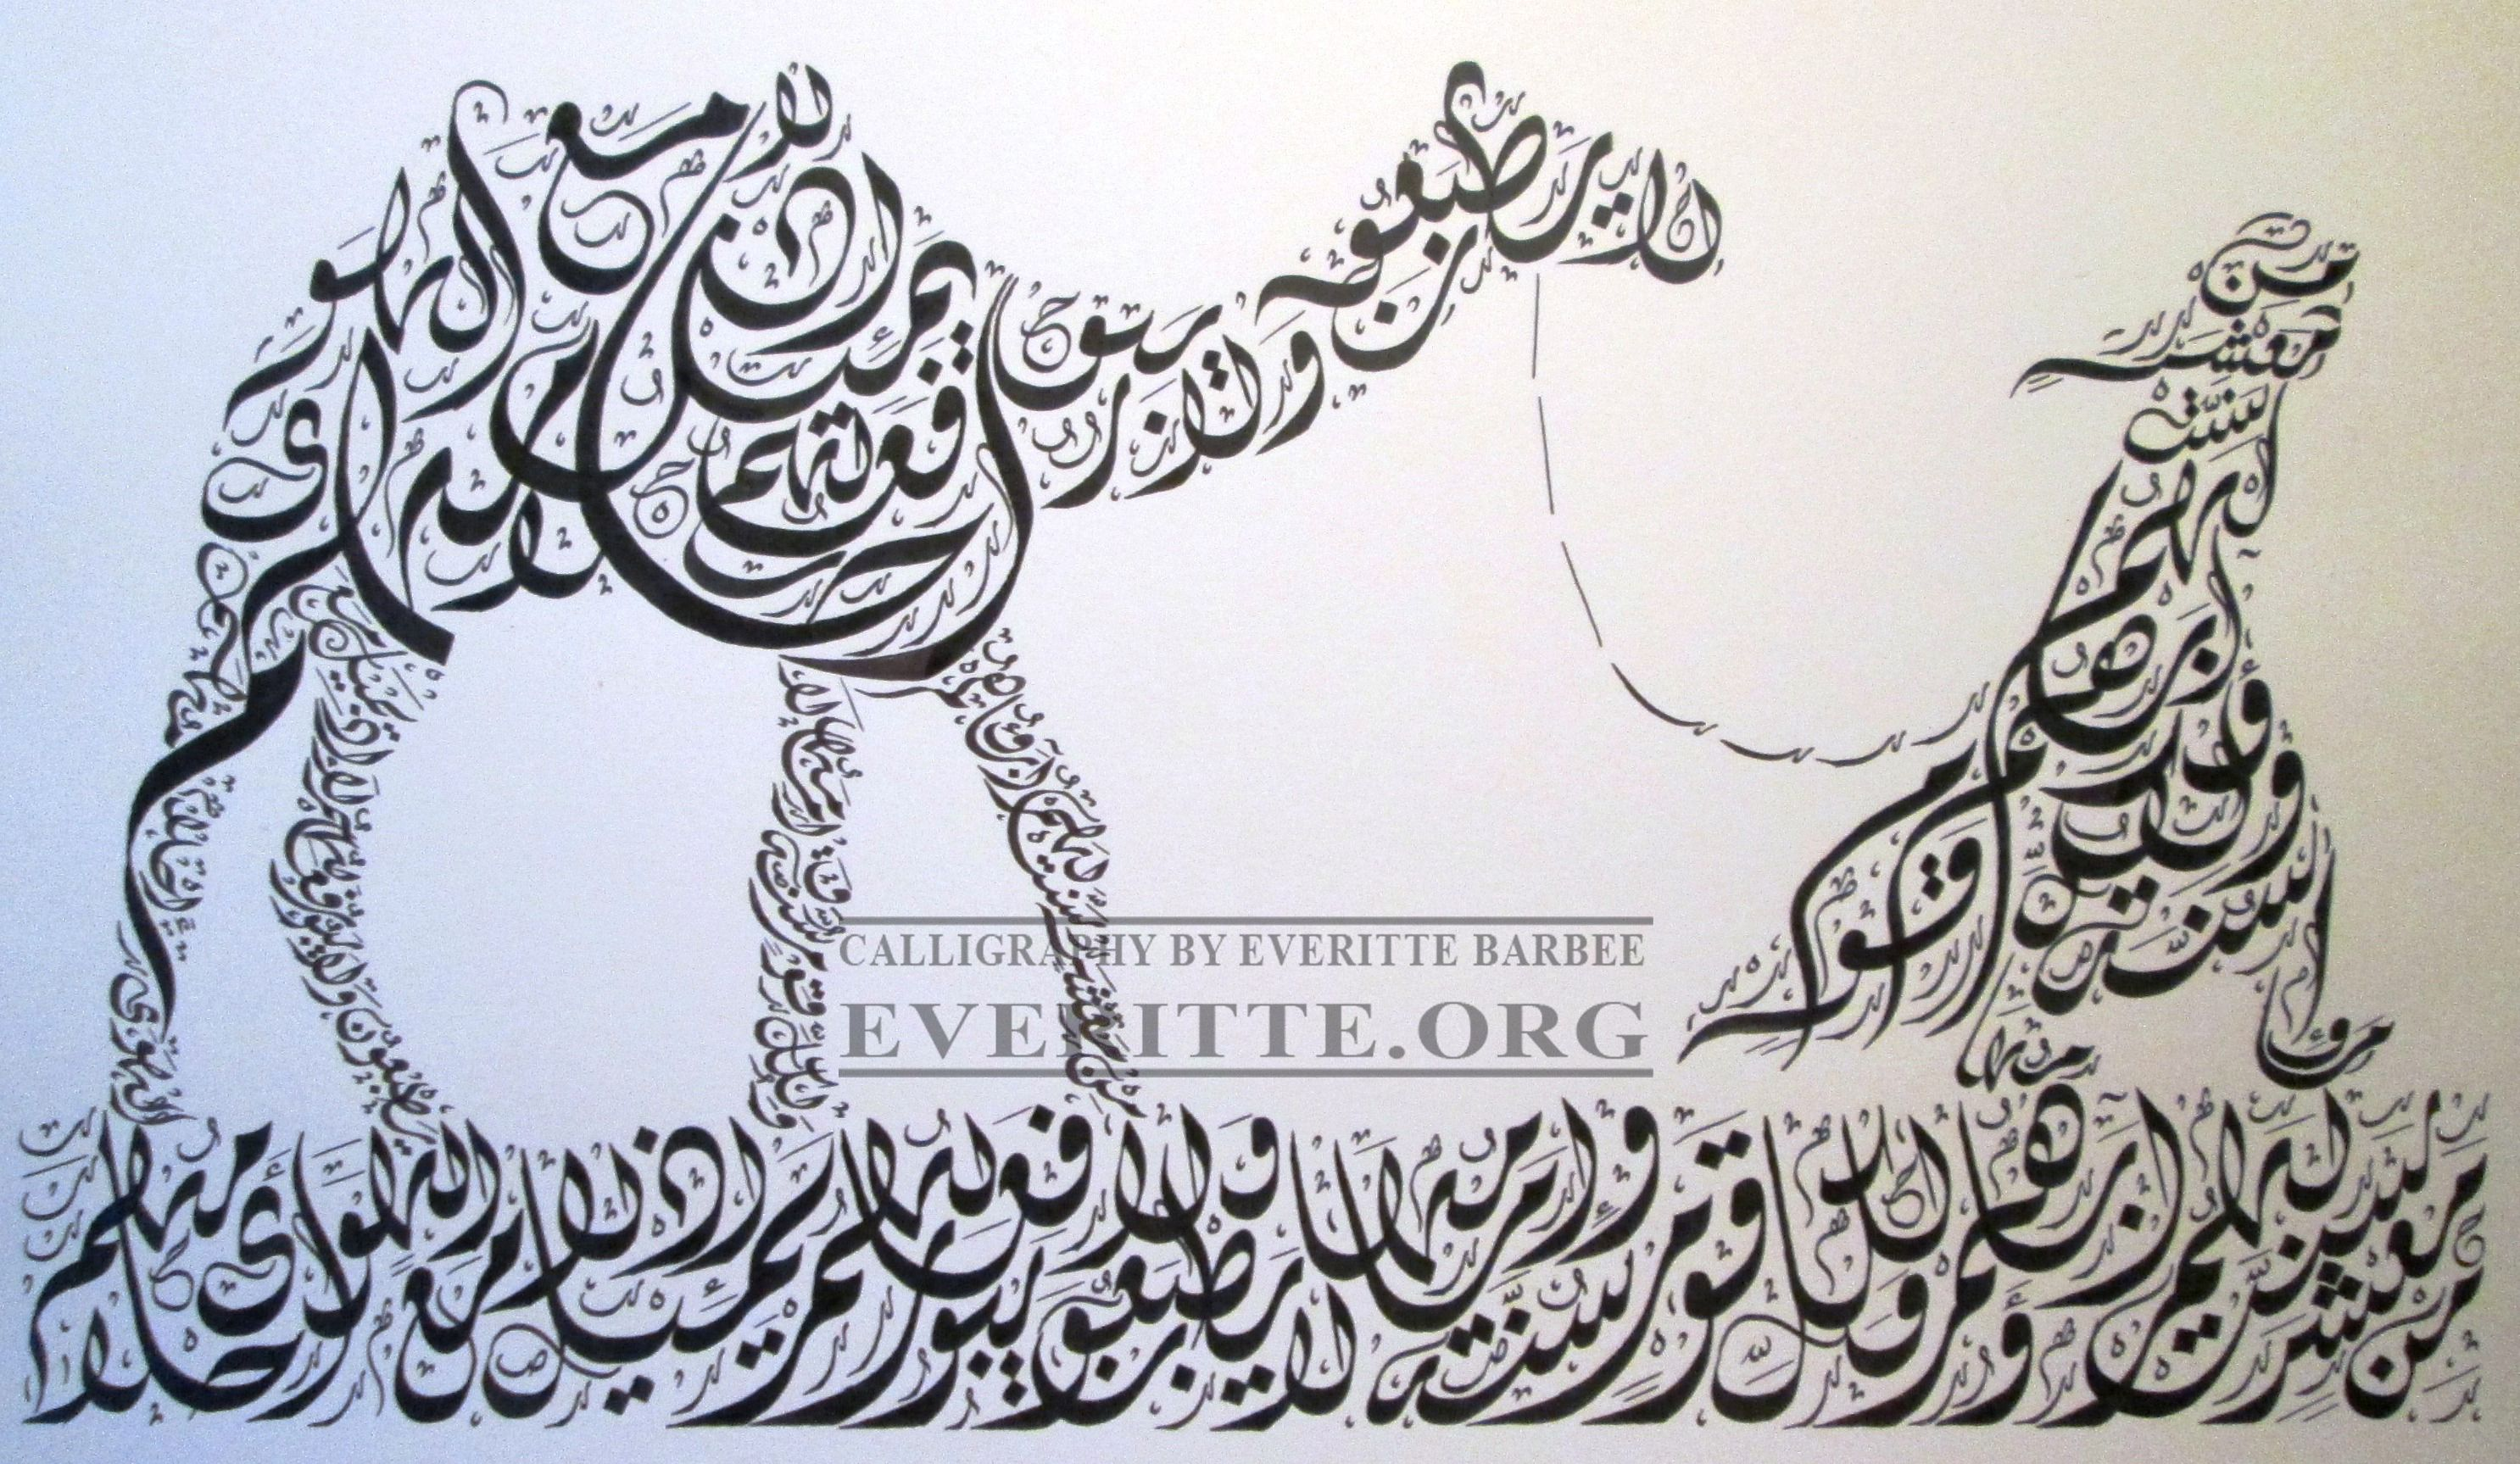 Pin By Mohamed A Salam On إبداعات الخط العربي Calligraphy Print Islamic Art Calligraphy Arabic Calligraphy